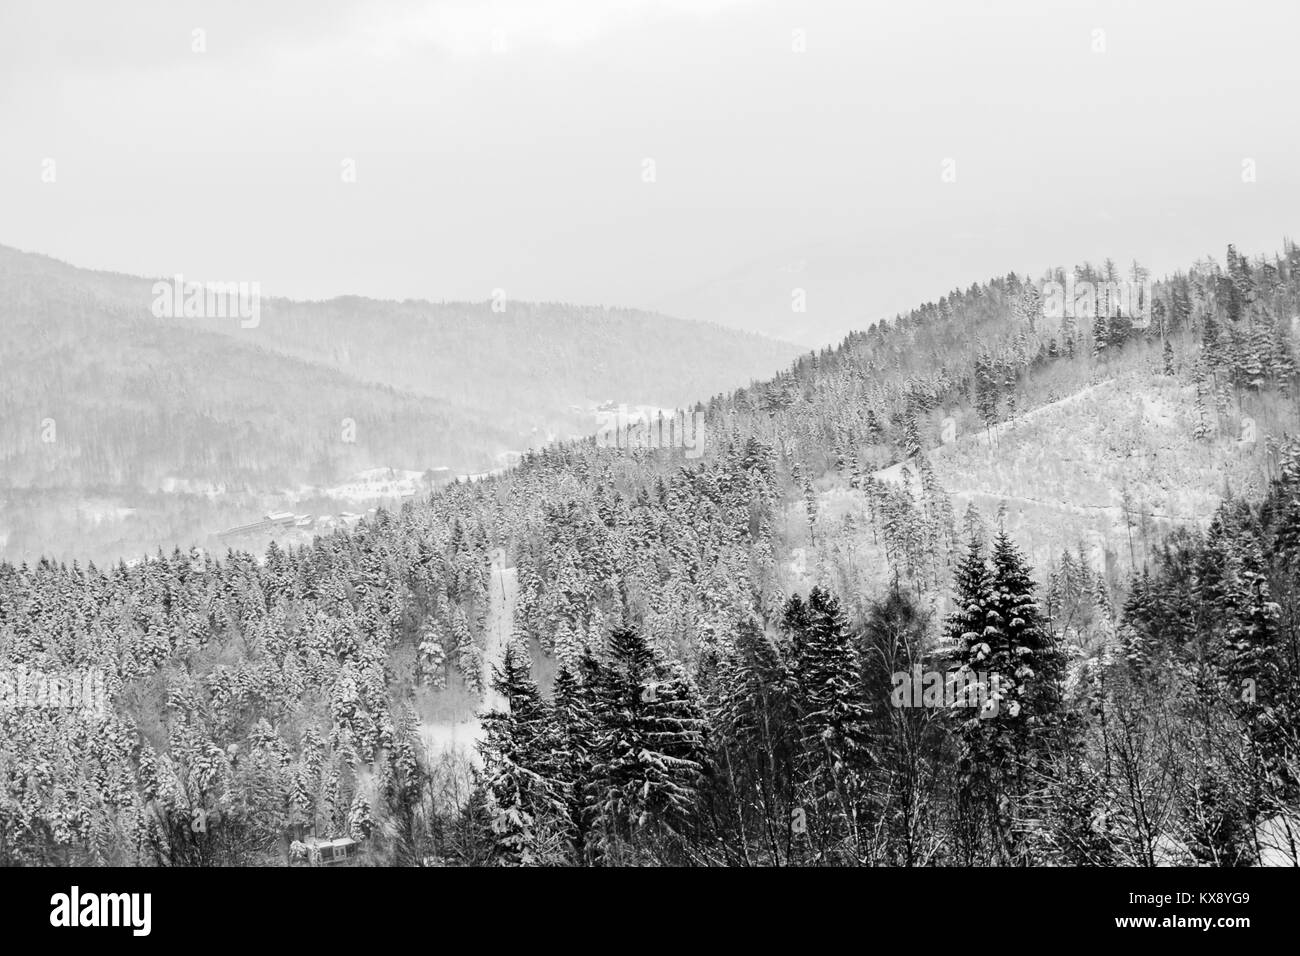 Landscape view on a Beskid mountains in Szczyrk covered in white snow Stock Photo